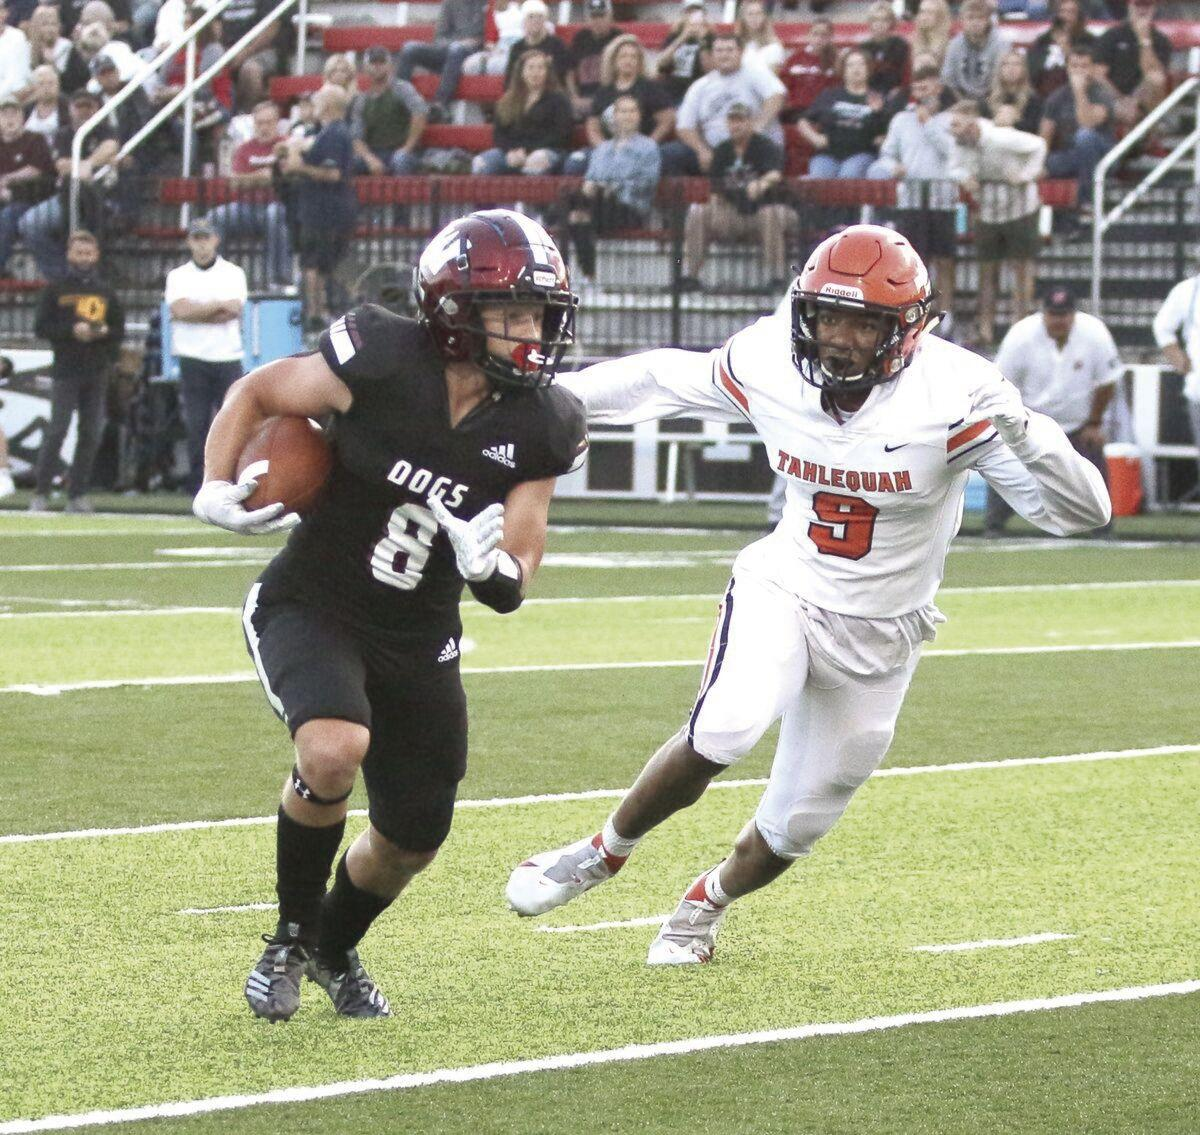 MISSED OPPORTUNITIES: Tigers come up short against Wagoner